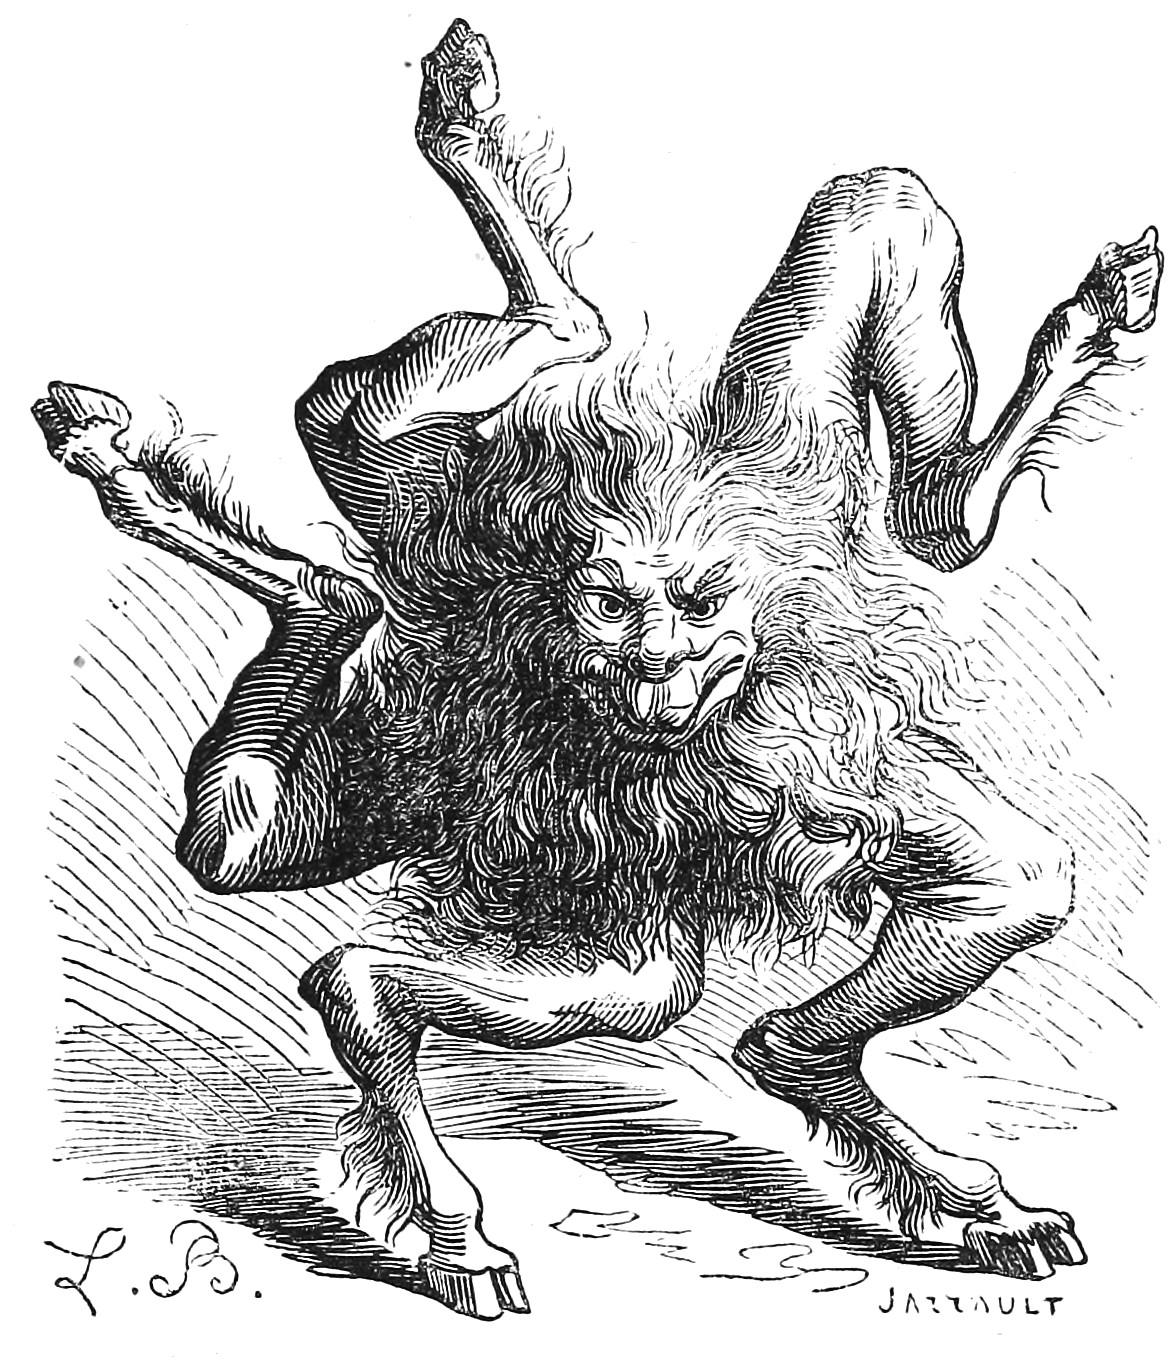 Lion-Shaped Demon, Testament of Solomon